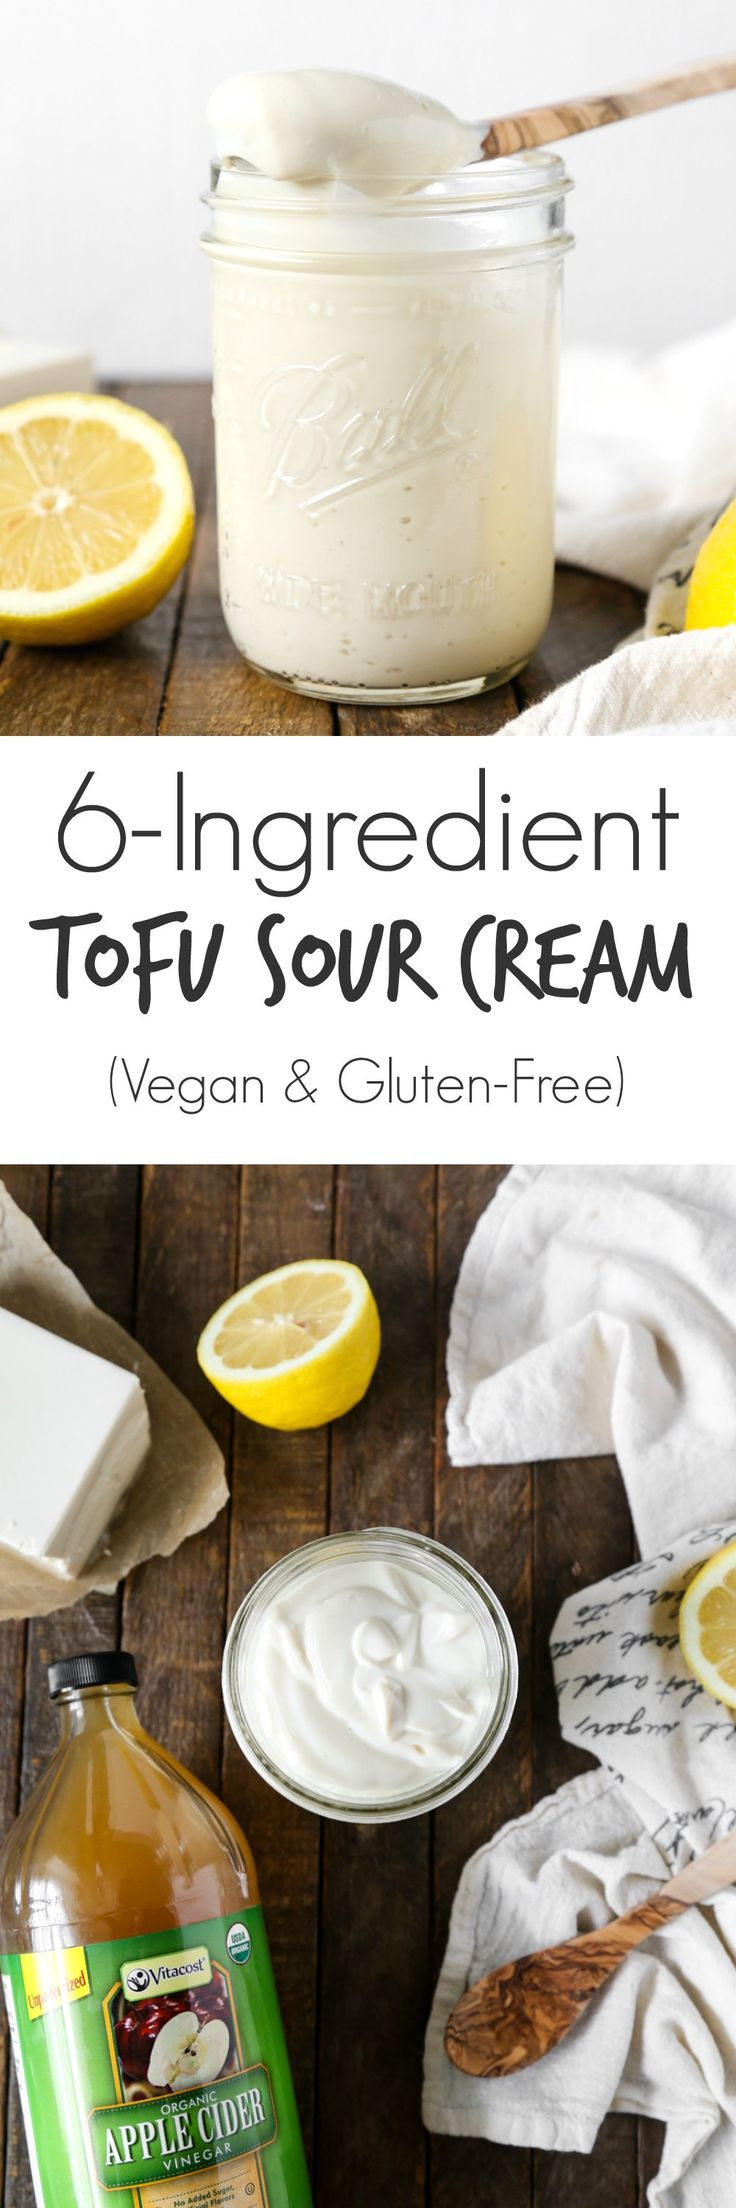 Vegan Tofu Sour Cream (6 Ingredients) - The Plant Philosophy